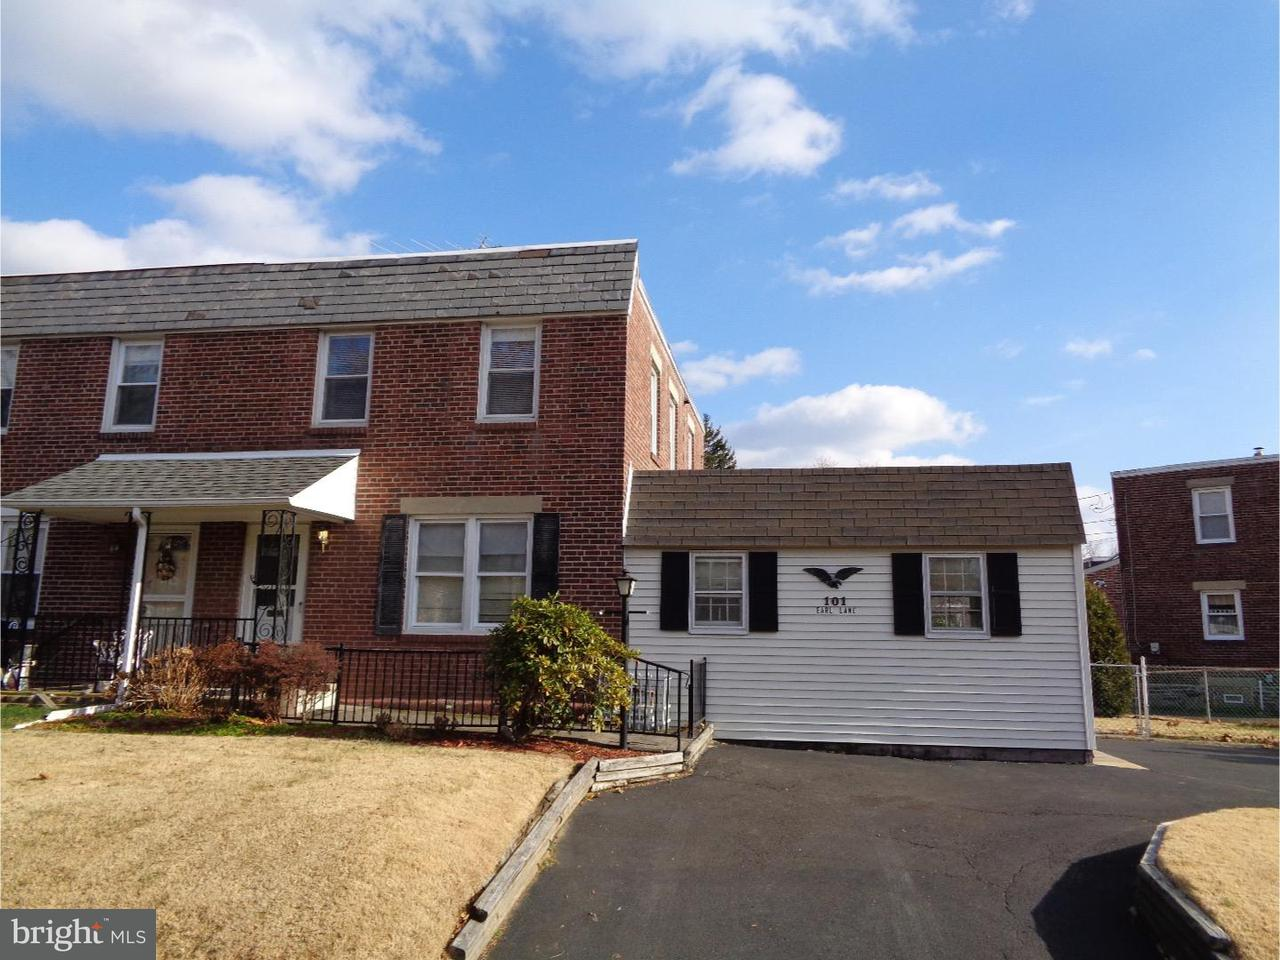 Townhouse for Rent at 101 EARL Lane Hatboro, Pennsylvania 19040 United States